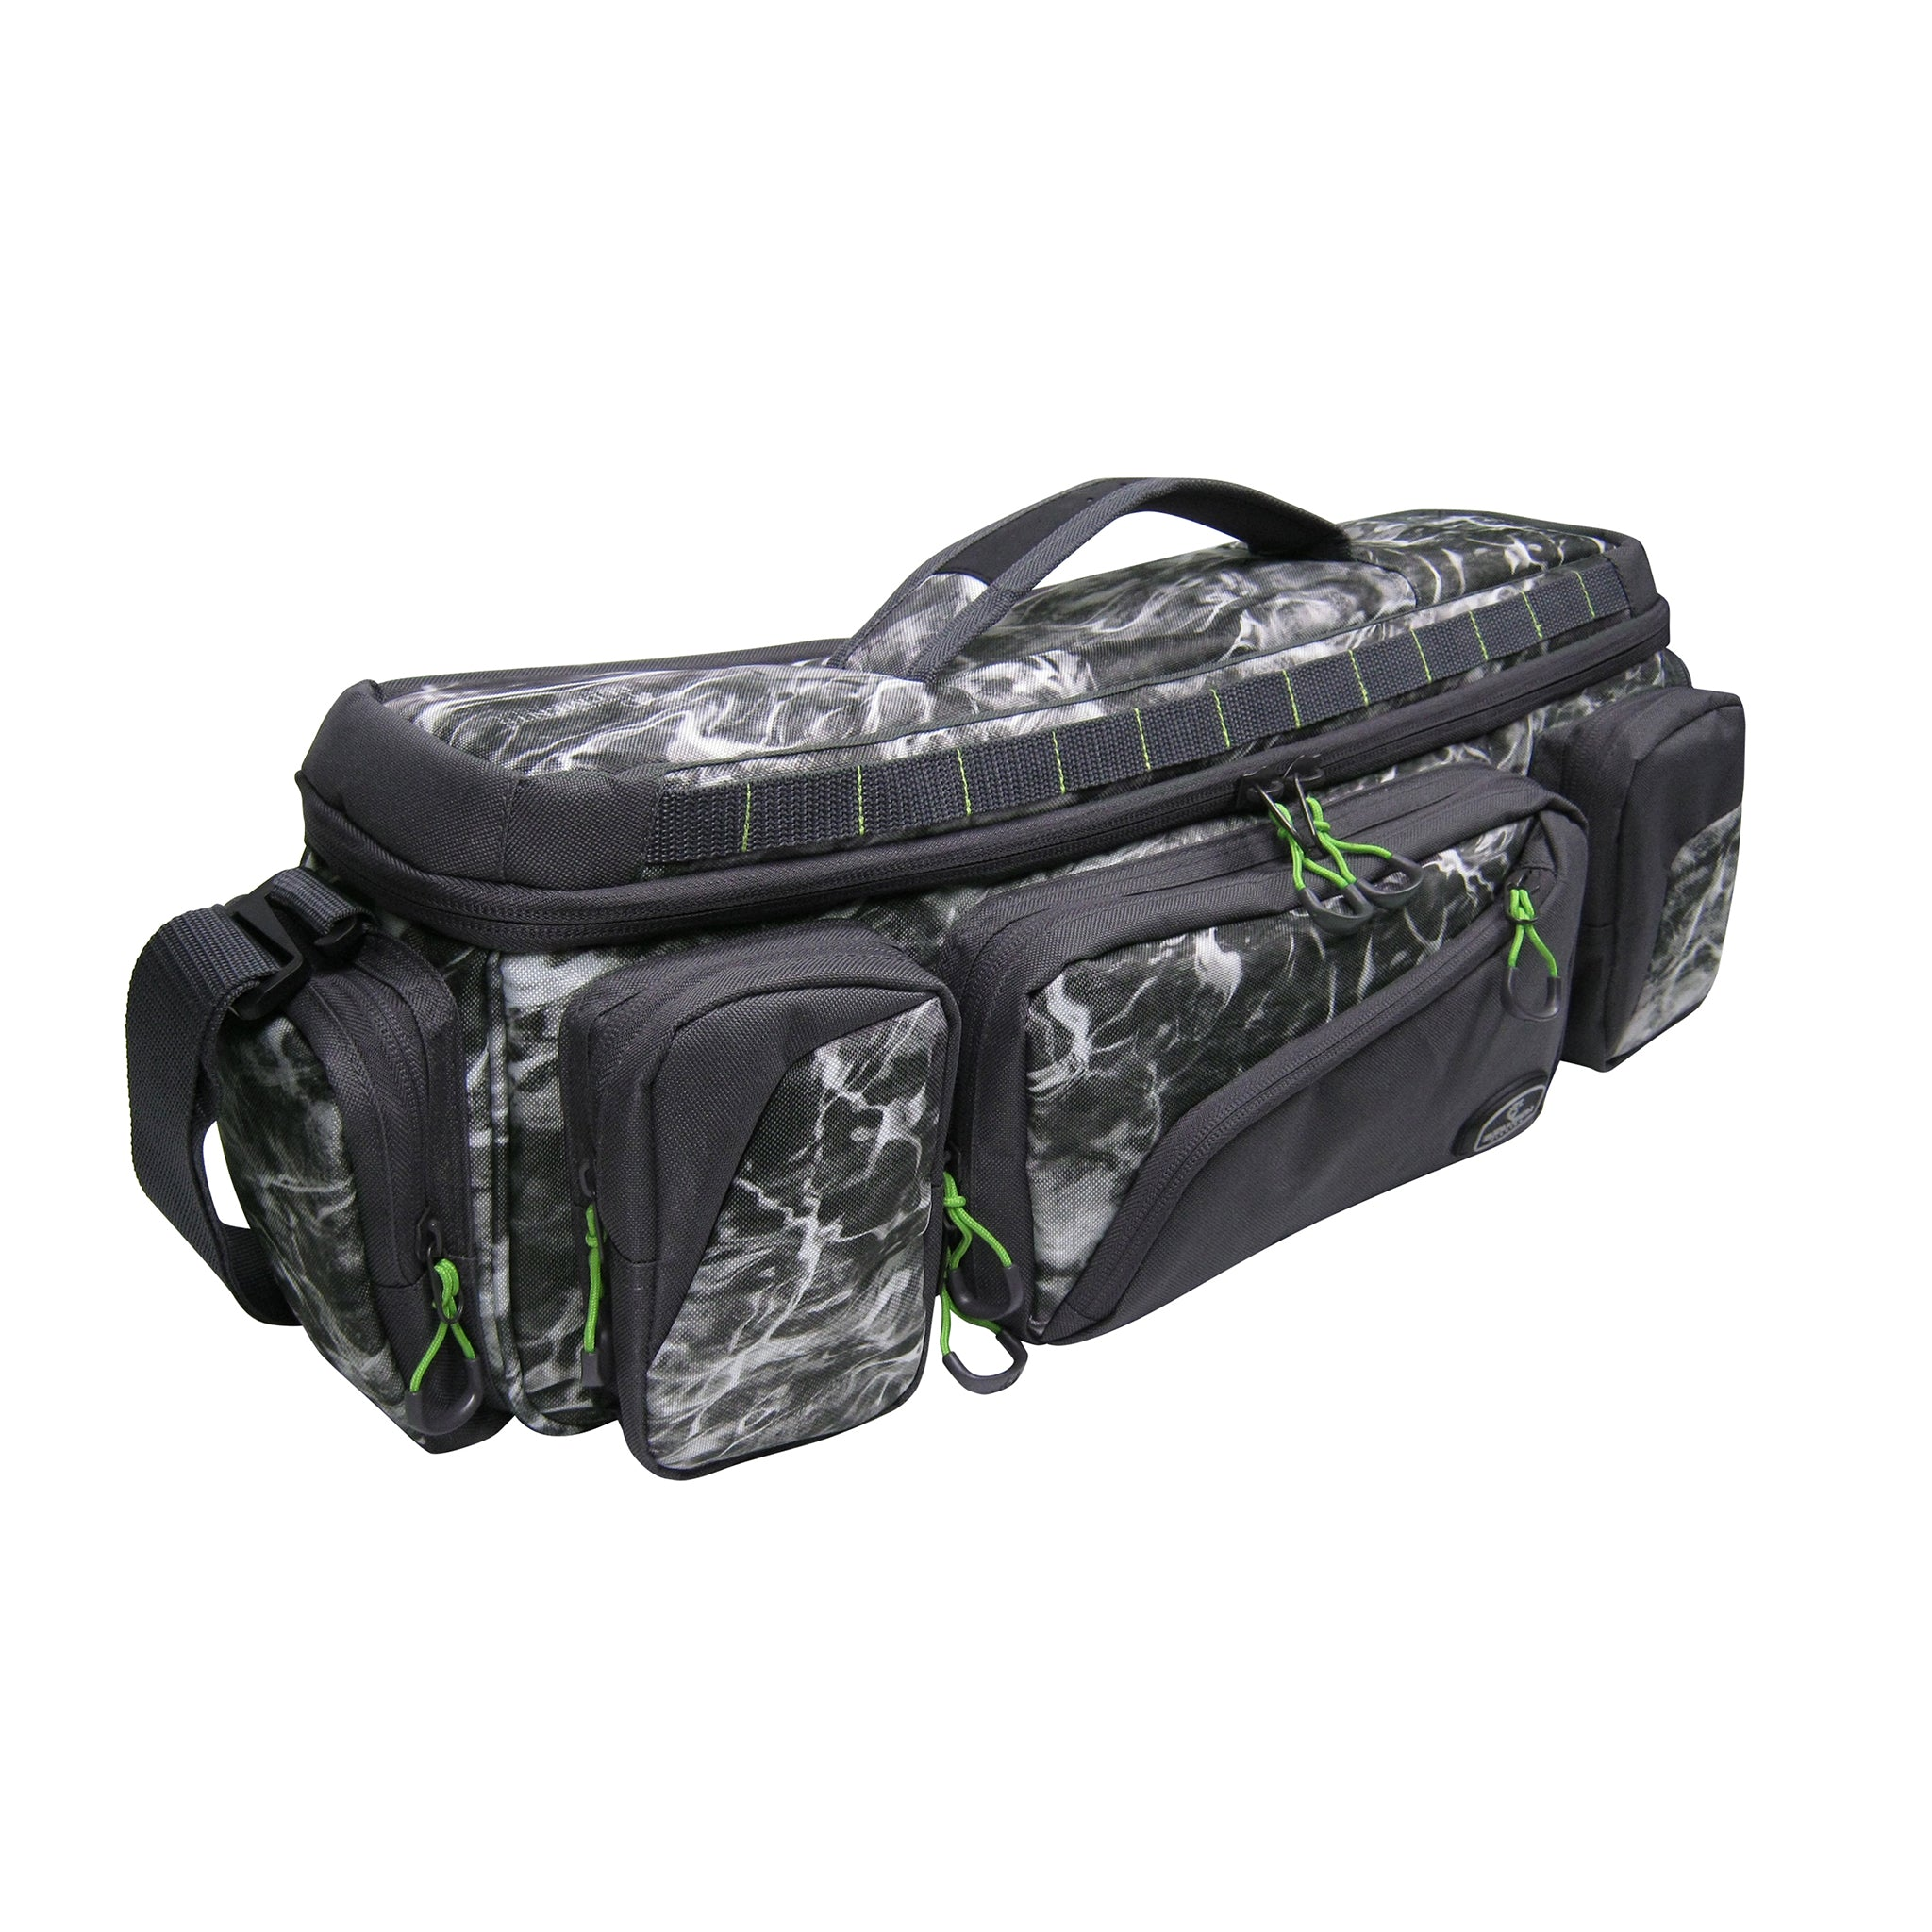 Large Mouth In-line Mossy Oak Tackle Bag - 3600 or 3700 size